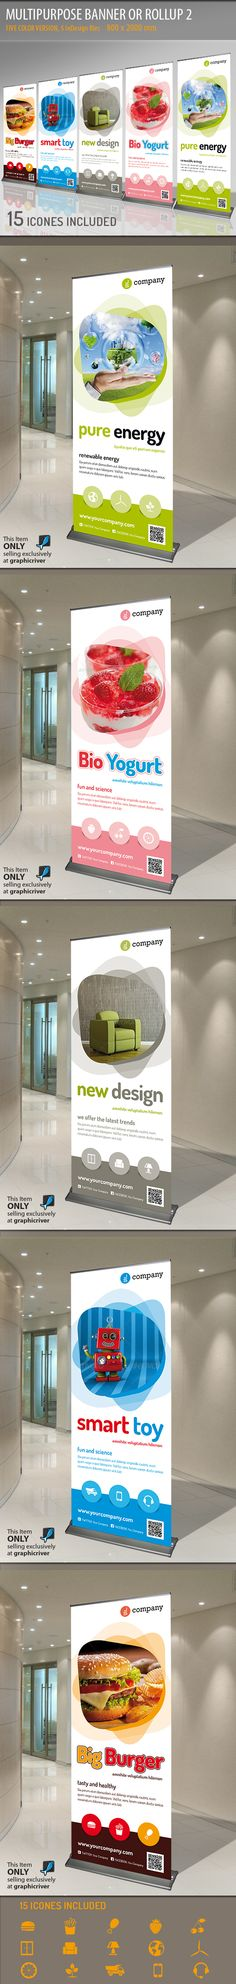 Multipurpose Banner or Rollup 2 on Behance